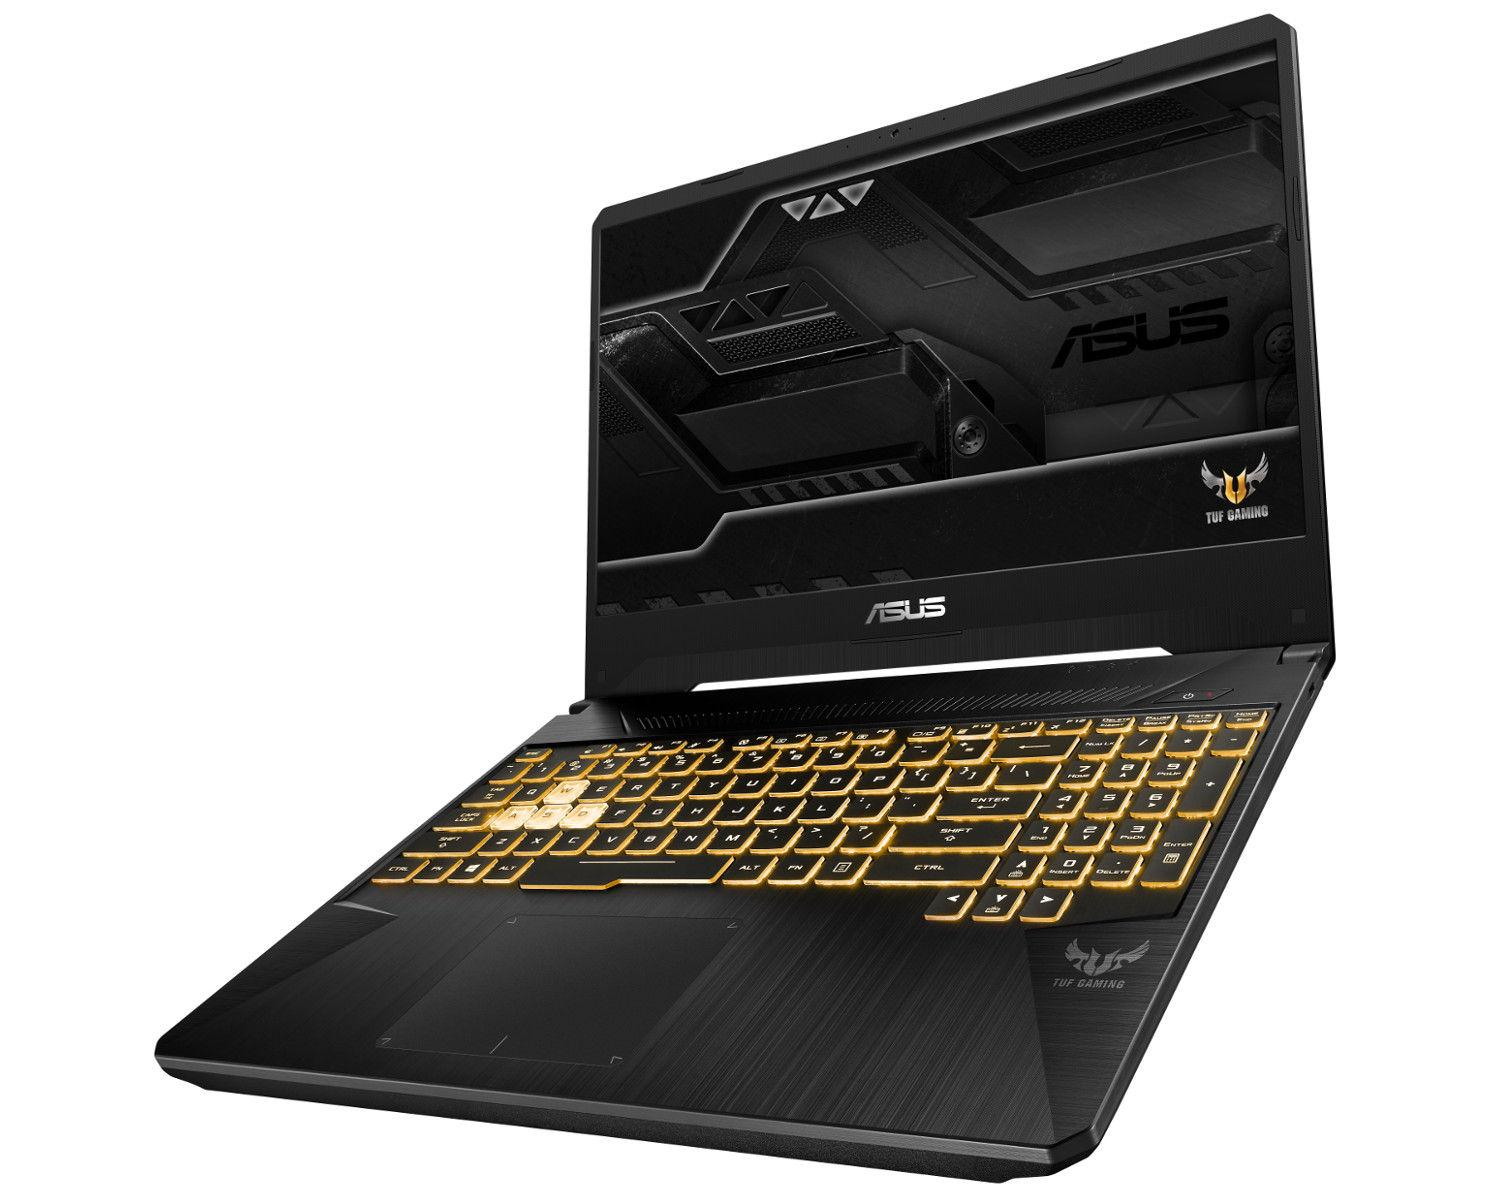 Image du PC portable Asus TUF 565GE-AL352 Noir/Gold - IPS 120Hz, GTX 1050 Ti, Sans Windows